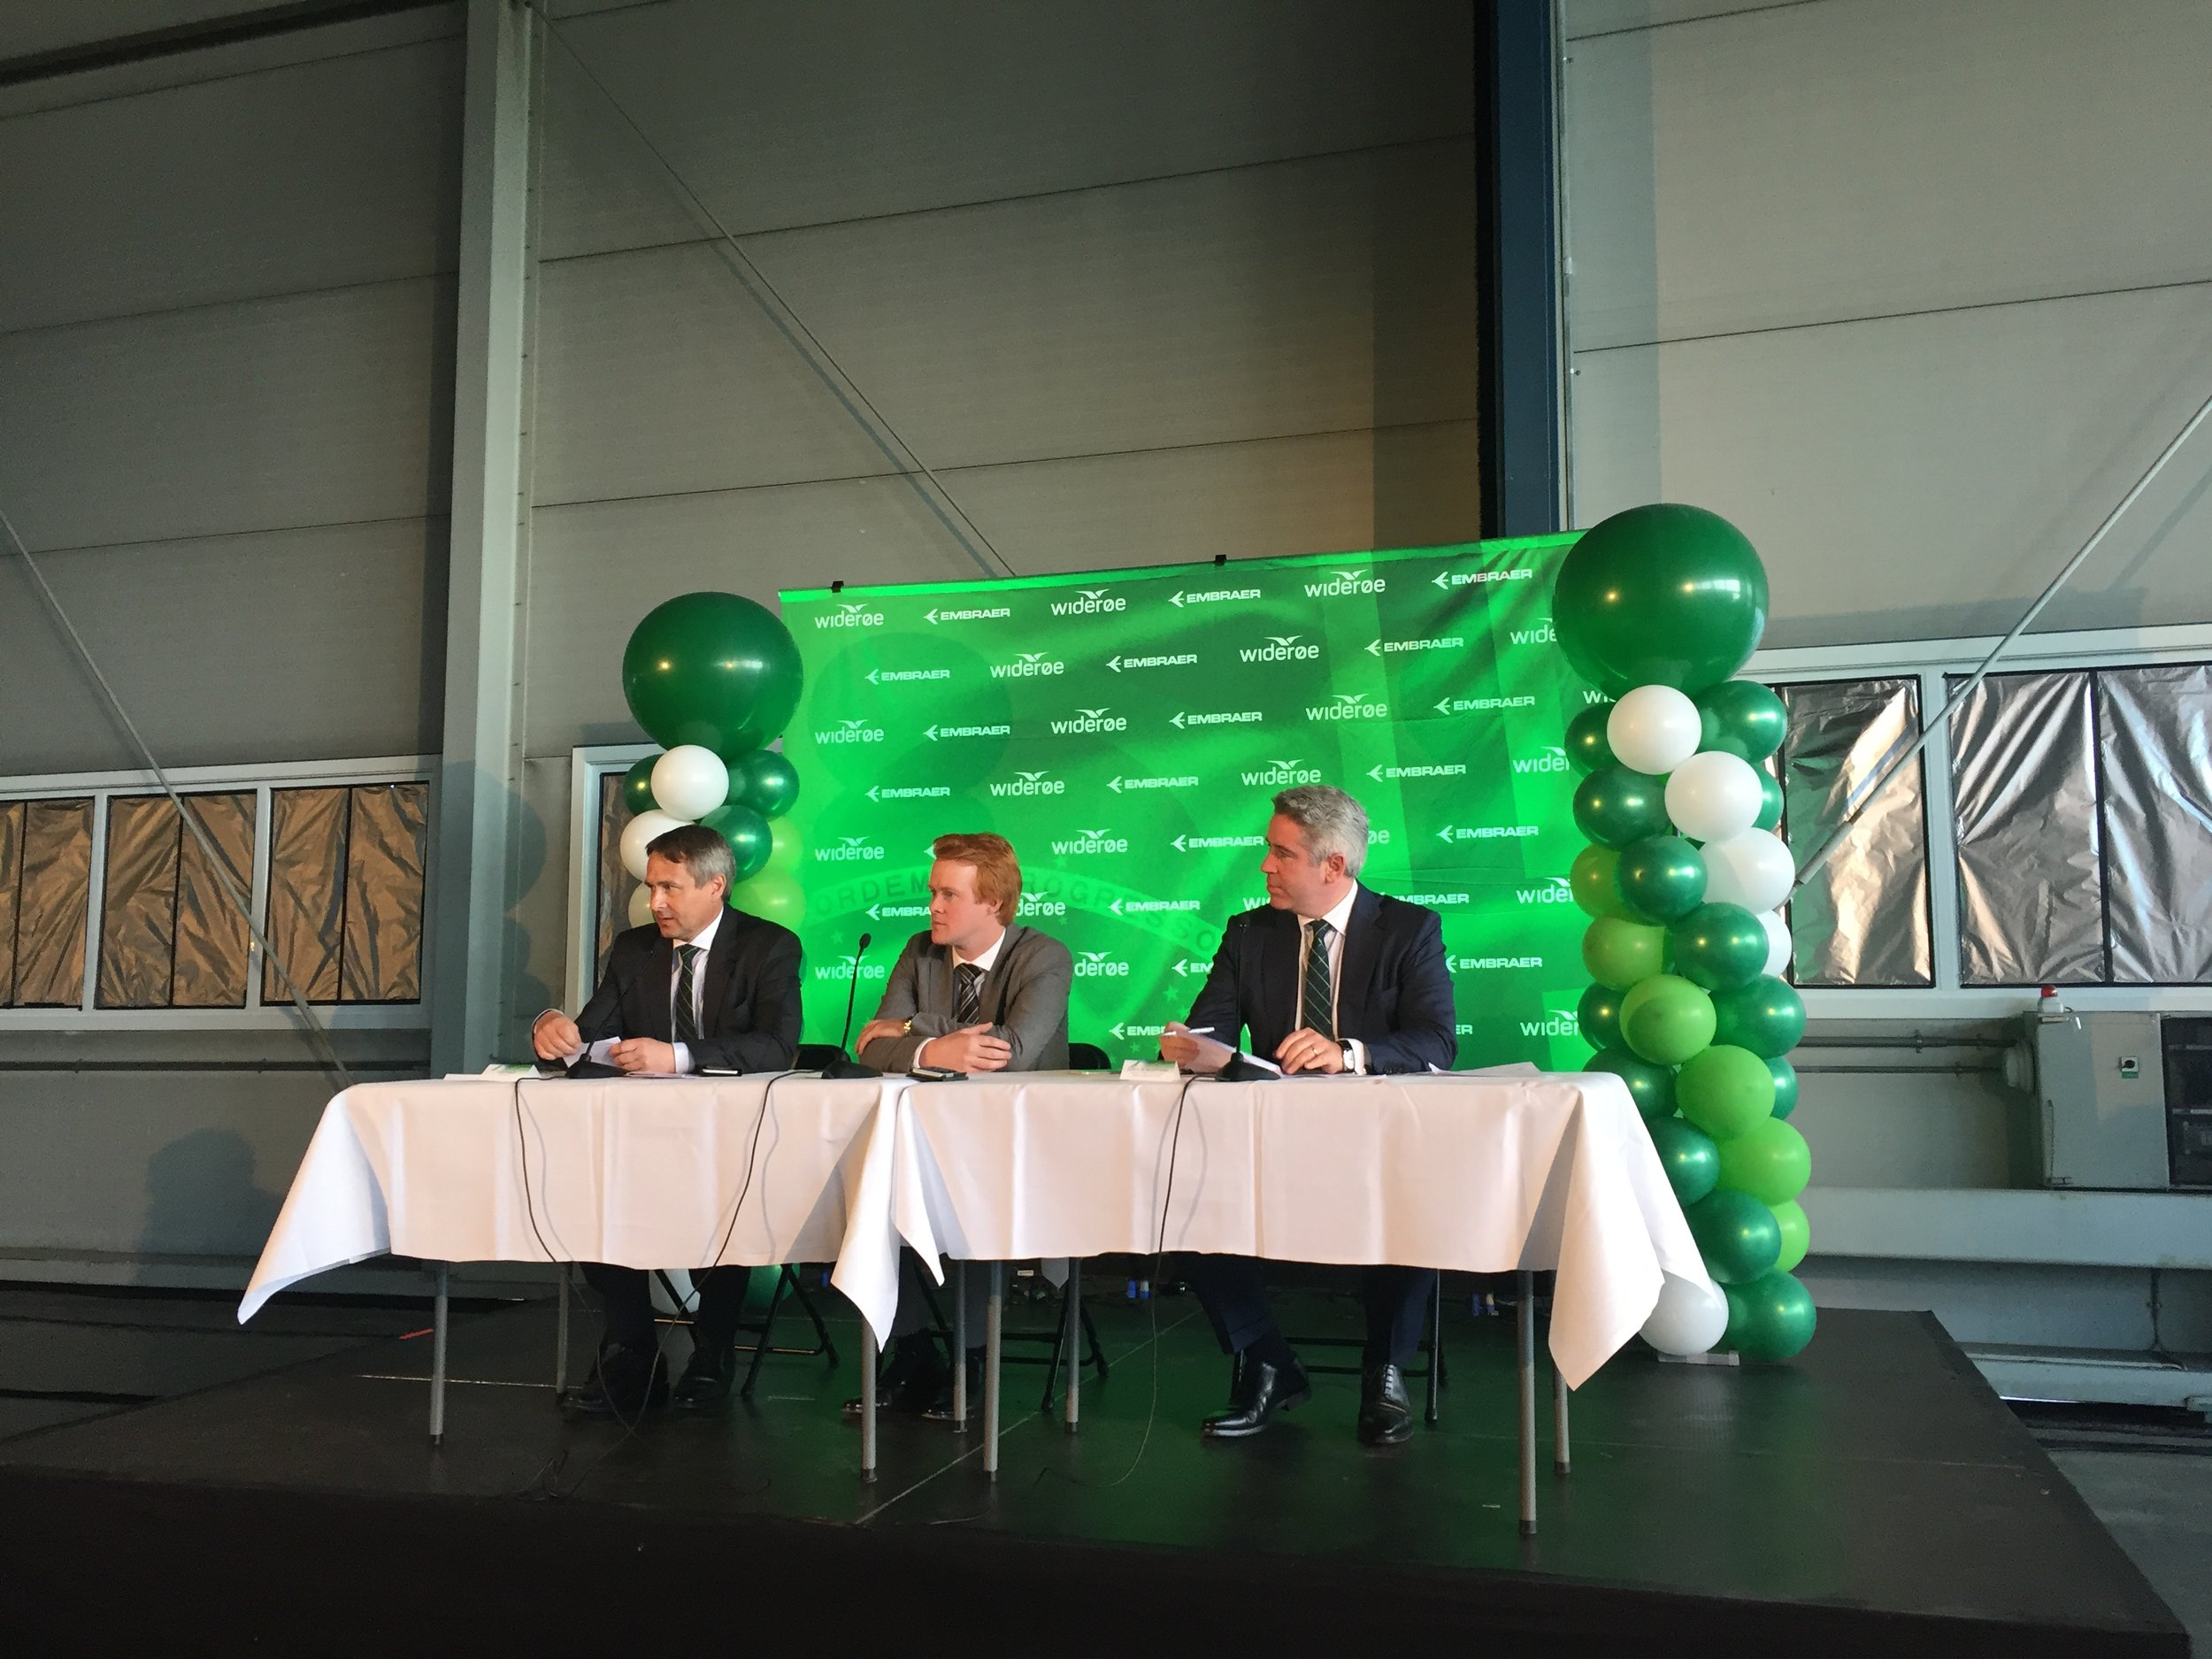 Press conference with Wideroe's CEO, Nilsein, the E2 project manager Mr.Aks and Embraer's Commercial Aircraft CEO, Slattery